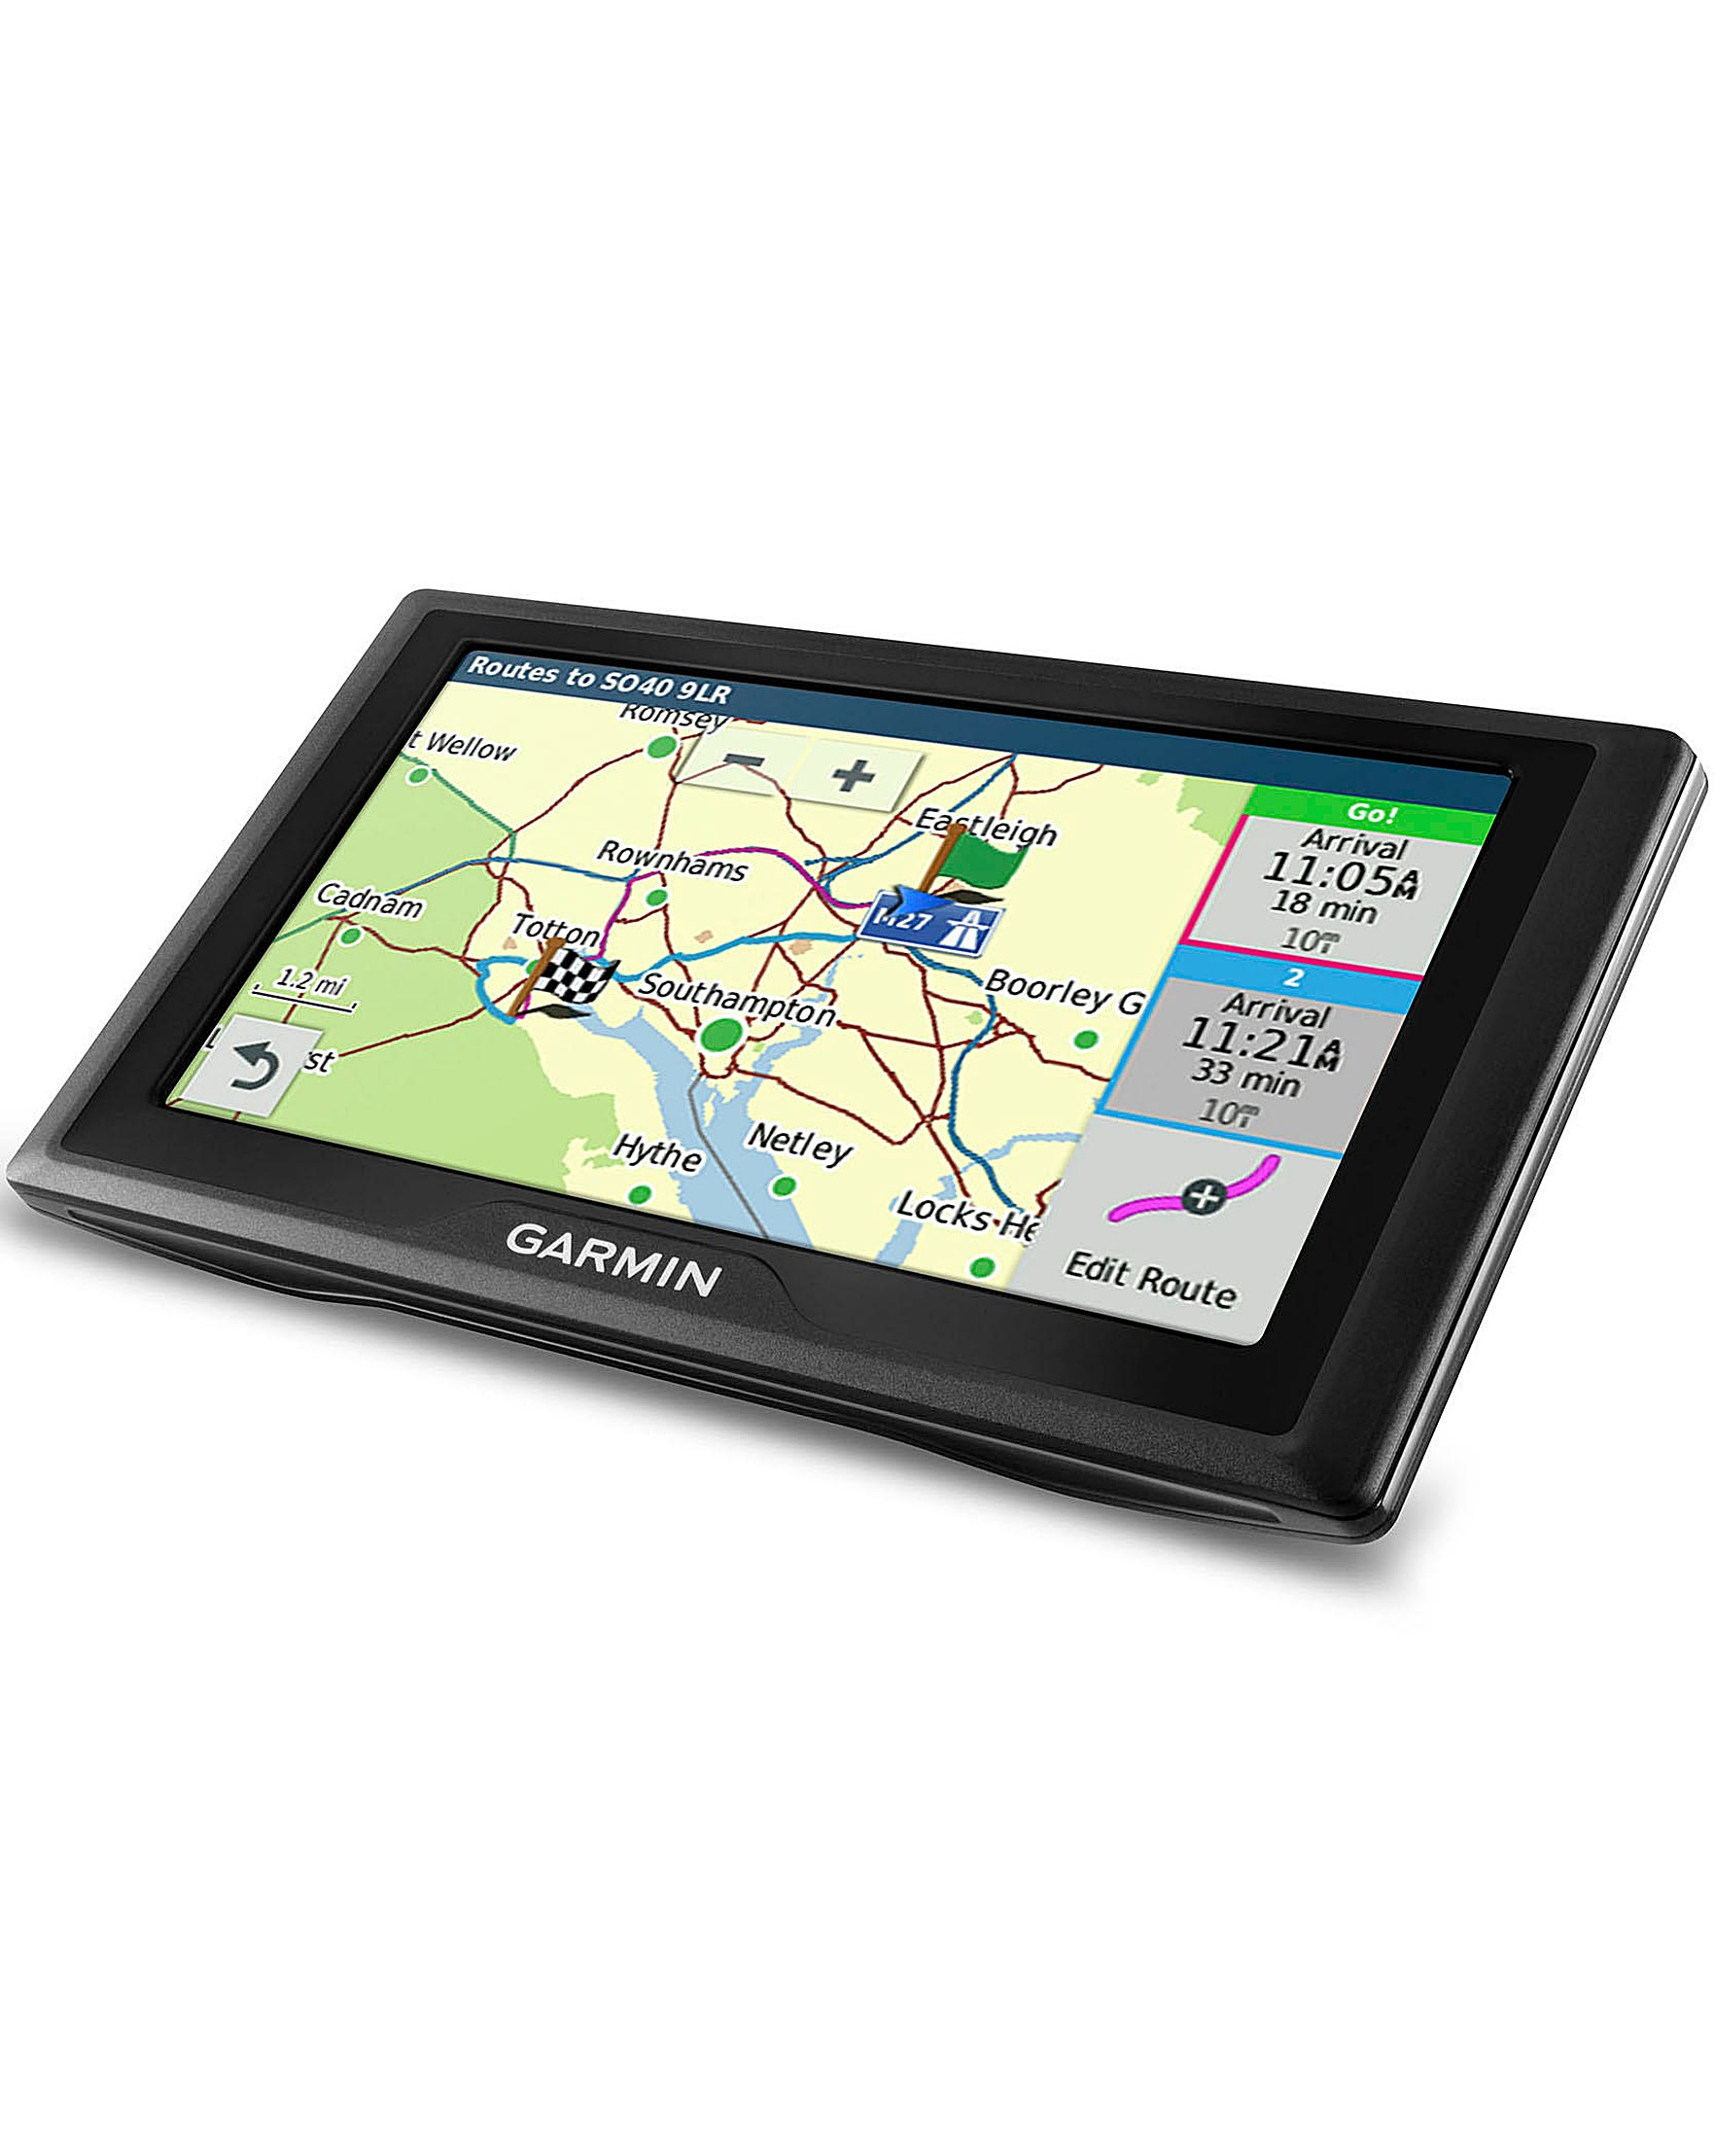 garmin drive 50lm 5 gps satnav driving alerts full europe lifetime map updates 753759028299 ebay. Black Bedroom Furniture Sets. Home Design Ideas